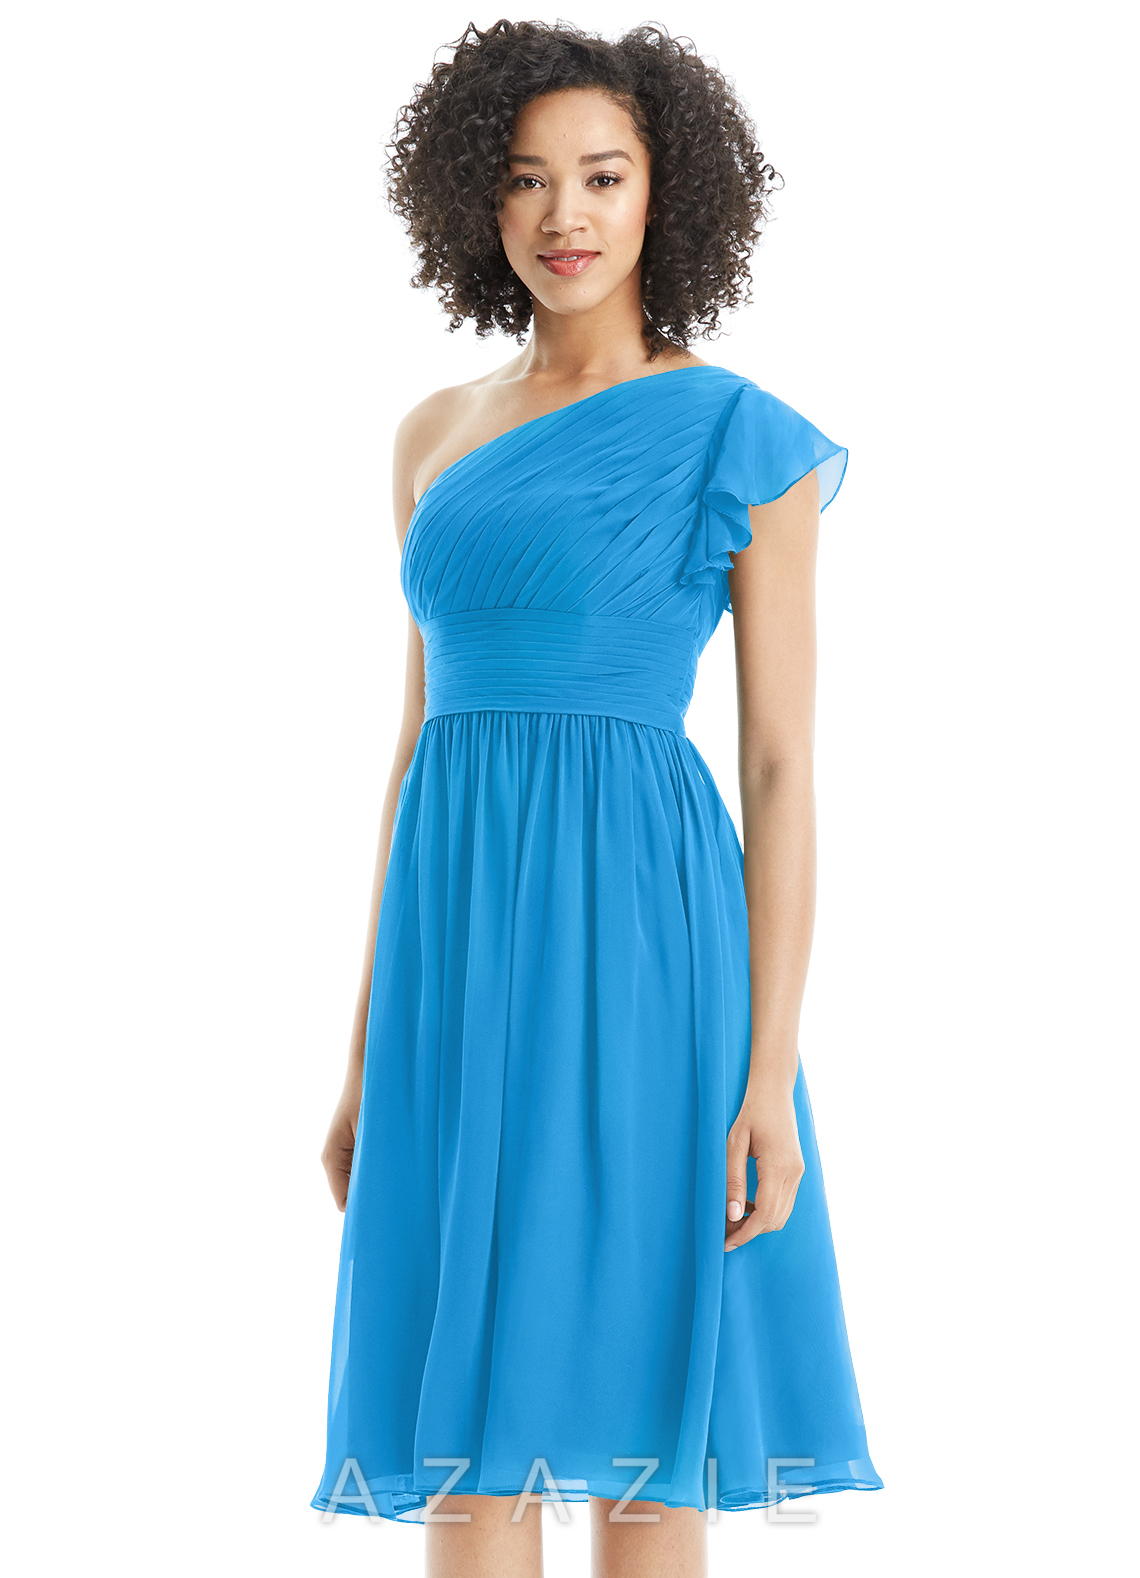 Azazie Carly Bridesmaid Dress | Azazie